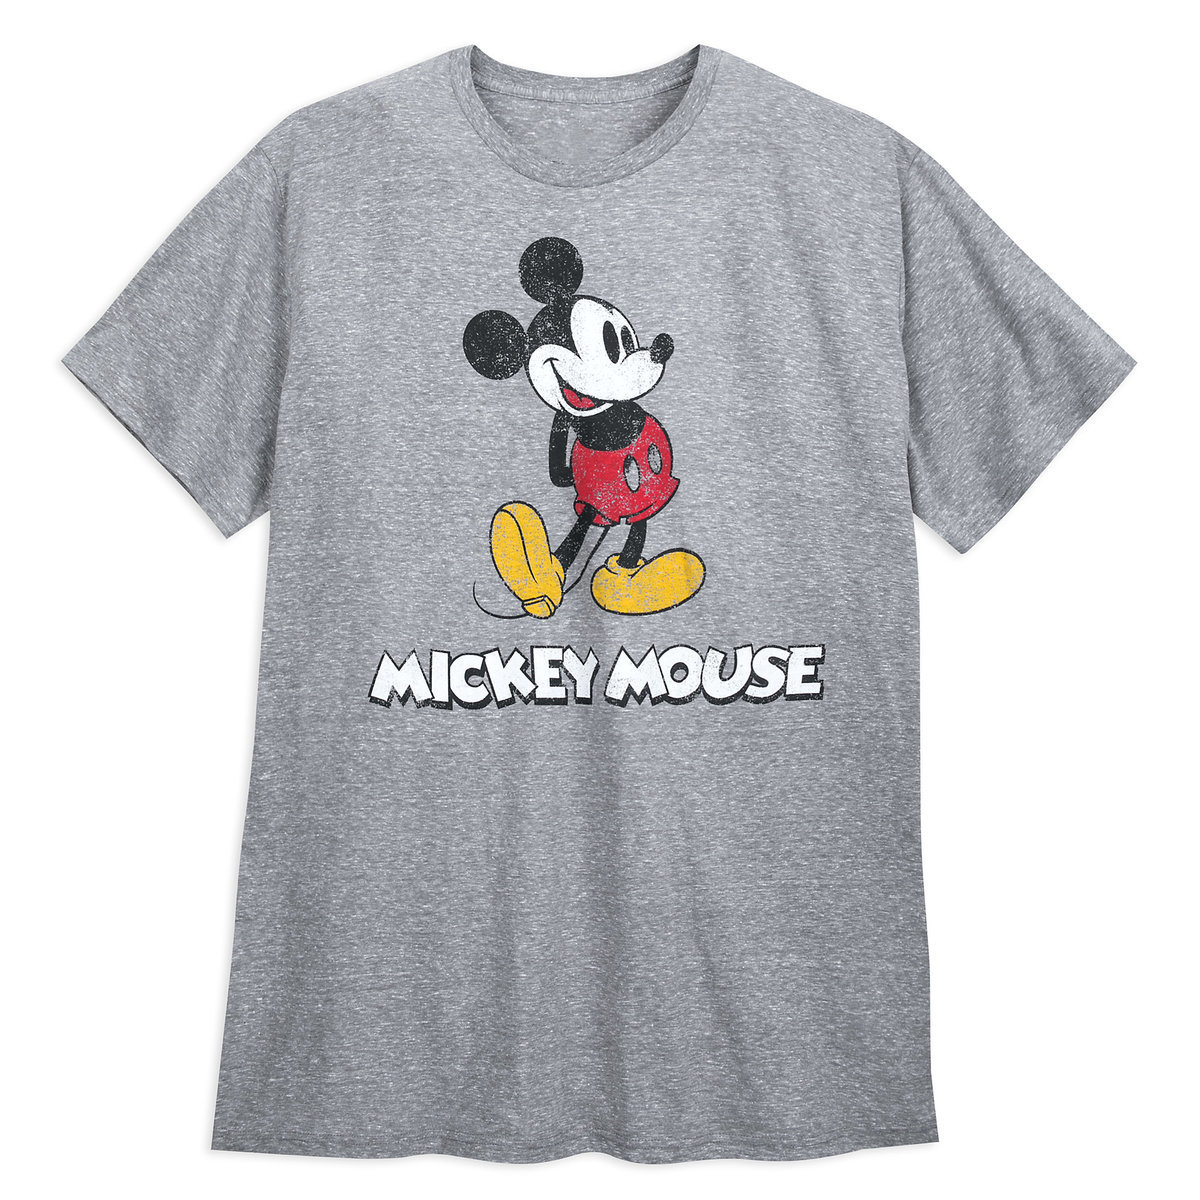 a605801e3 Product Image of Mickey Mouse Classic T-Shirt for Men - Gray - Extended Size